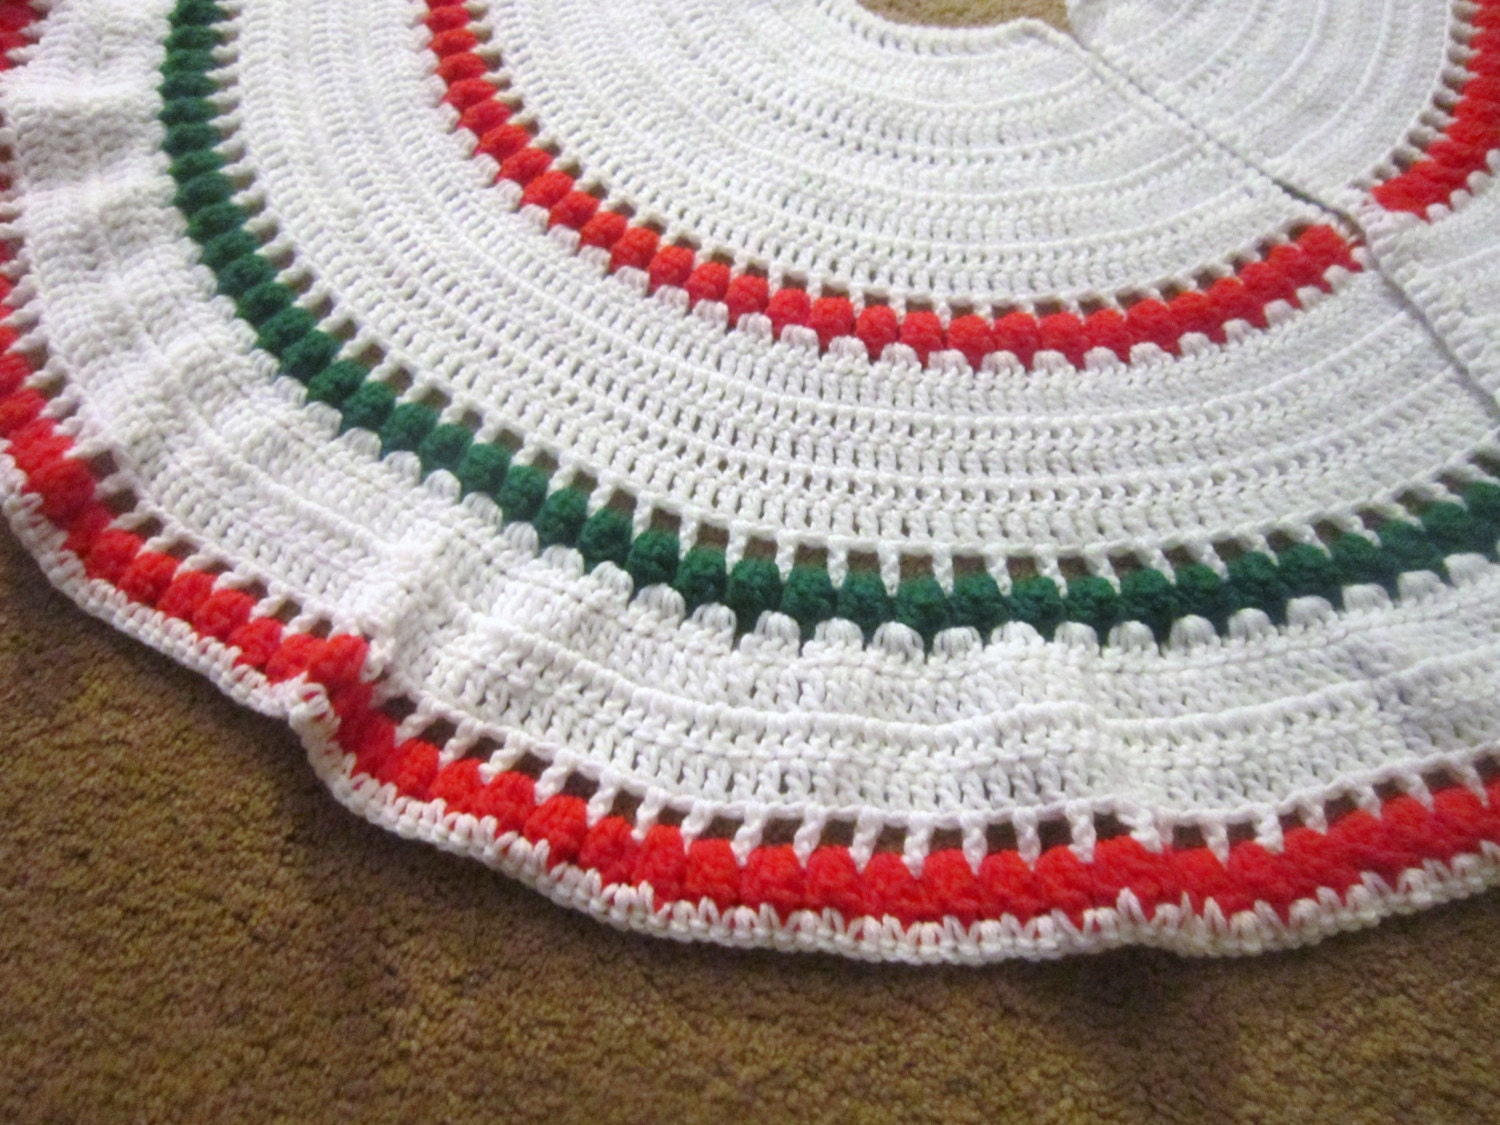 Crochet Xmas Tree Skirt : Round Crochet Christmas Tree Skirt by crochetedbycharlene on Etsy